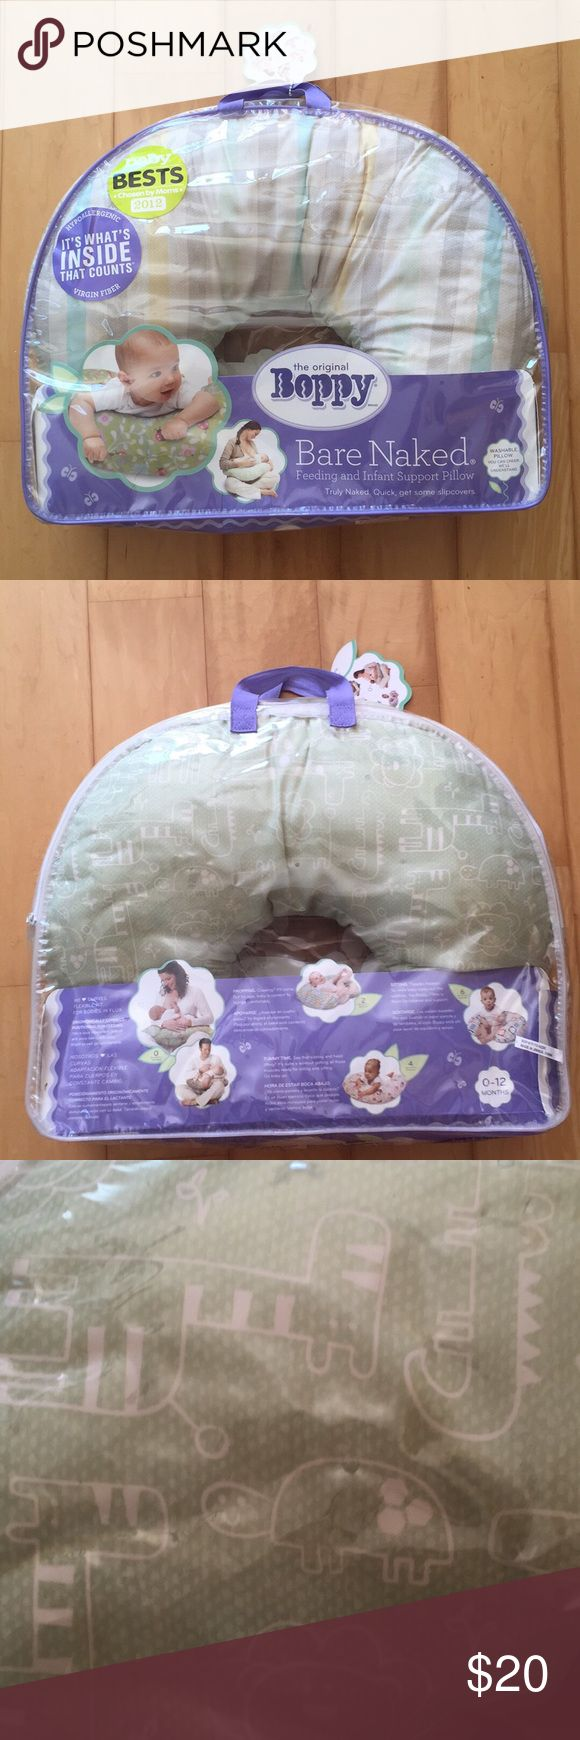 Boppy Bare Naked Feeding & Support Pillow New in bag. Hypoallergenic. Washable. Boppy Accessories